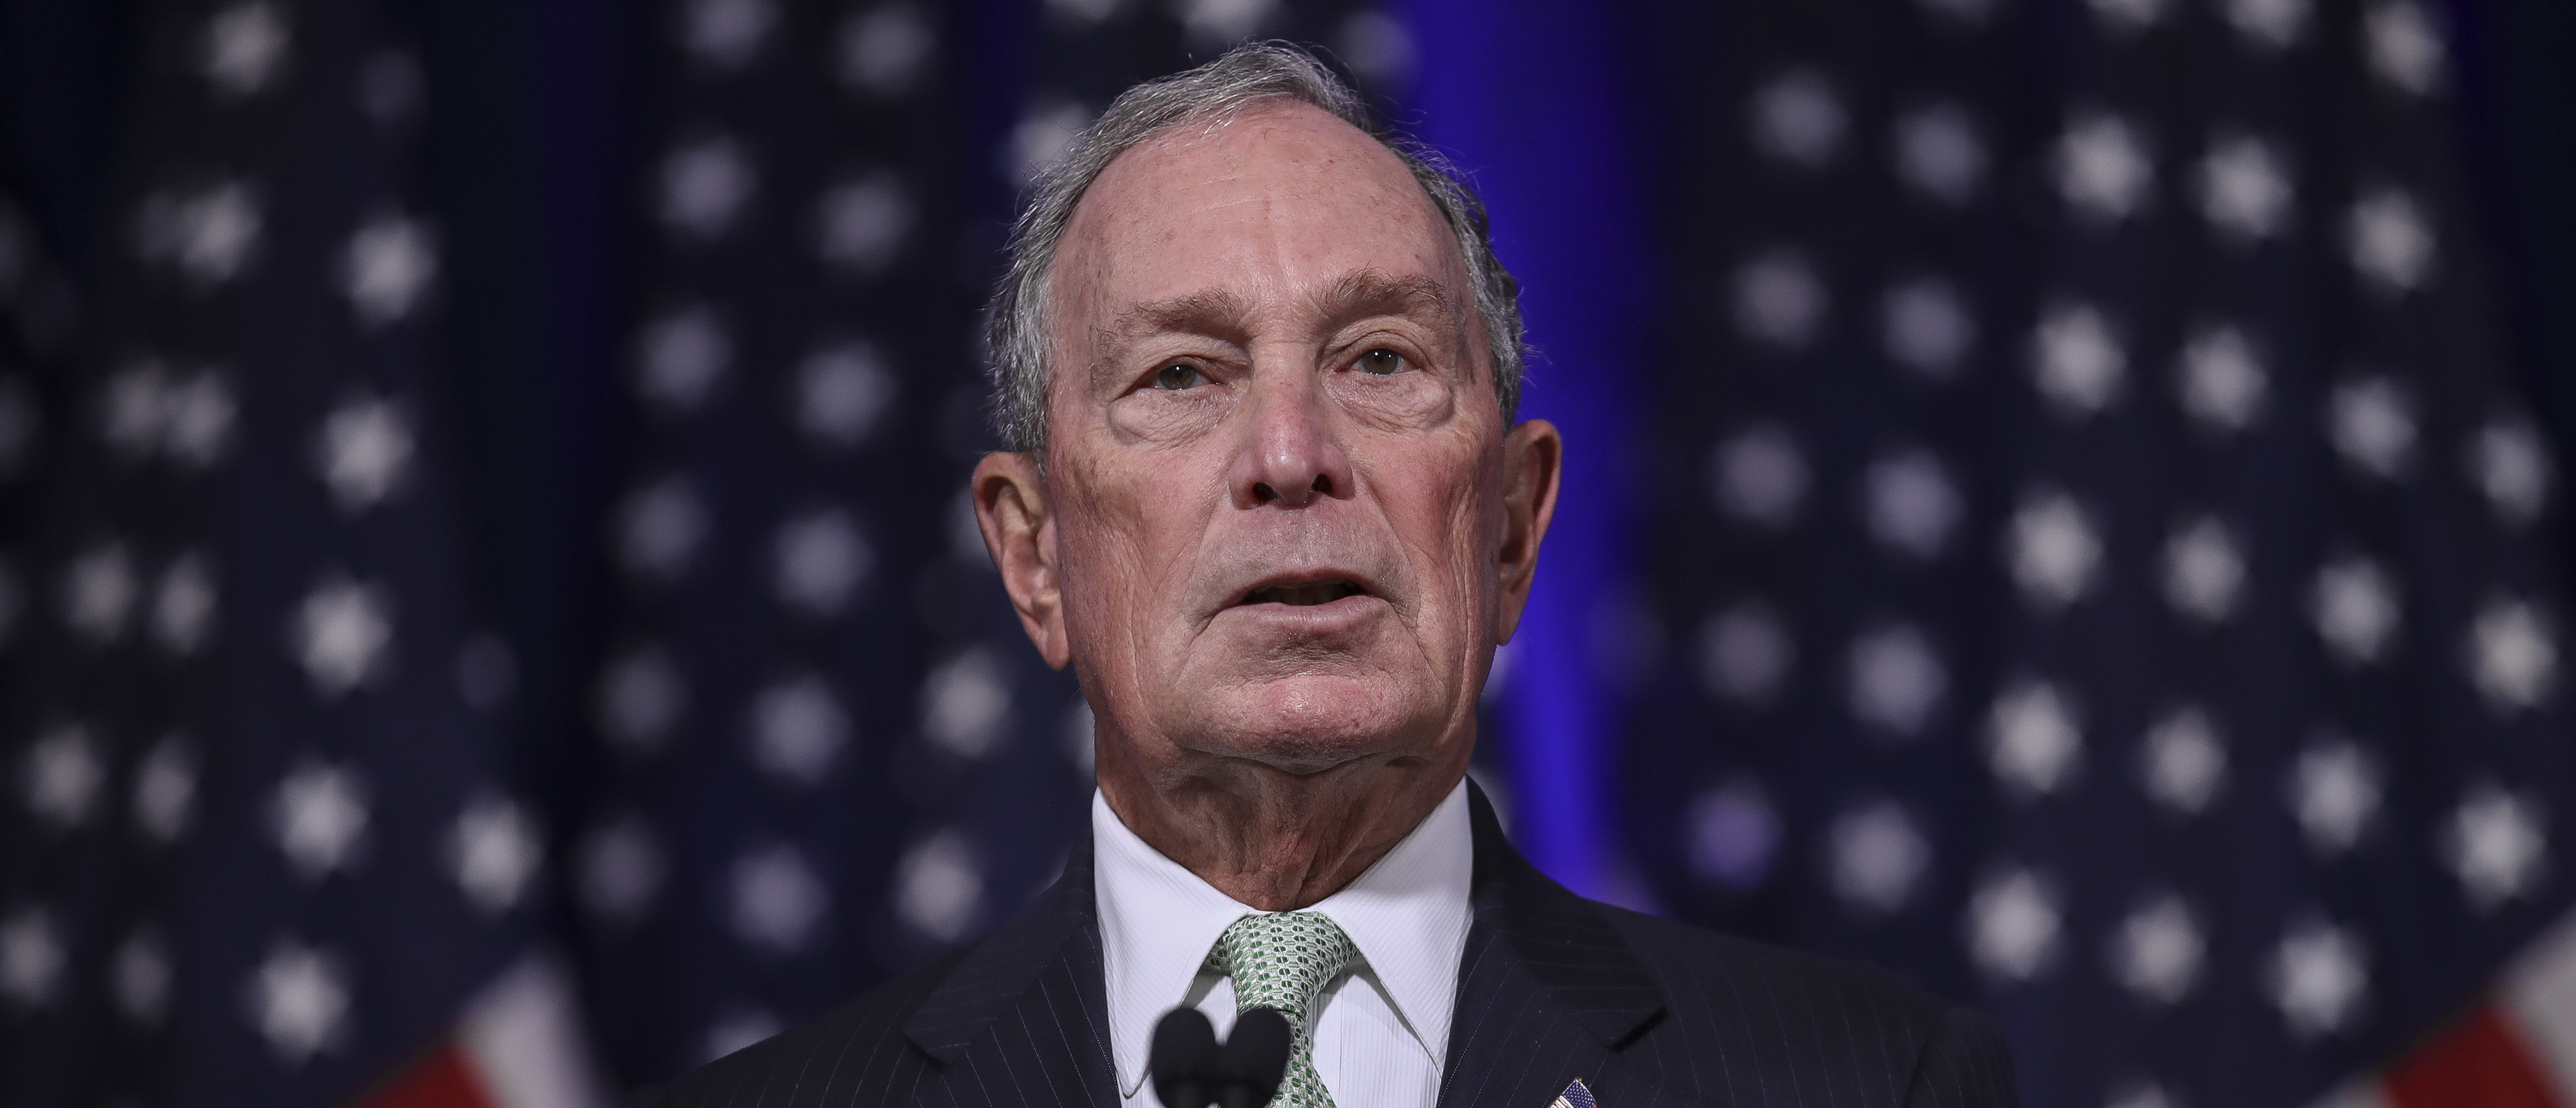 Pro-Abortion Bloomberg's $10 Million Super Bowl Ad Says He's 'Fighting For Every Child'